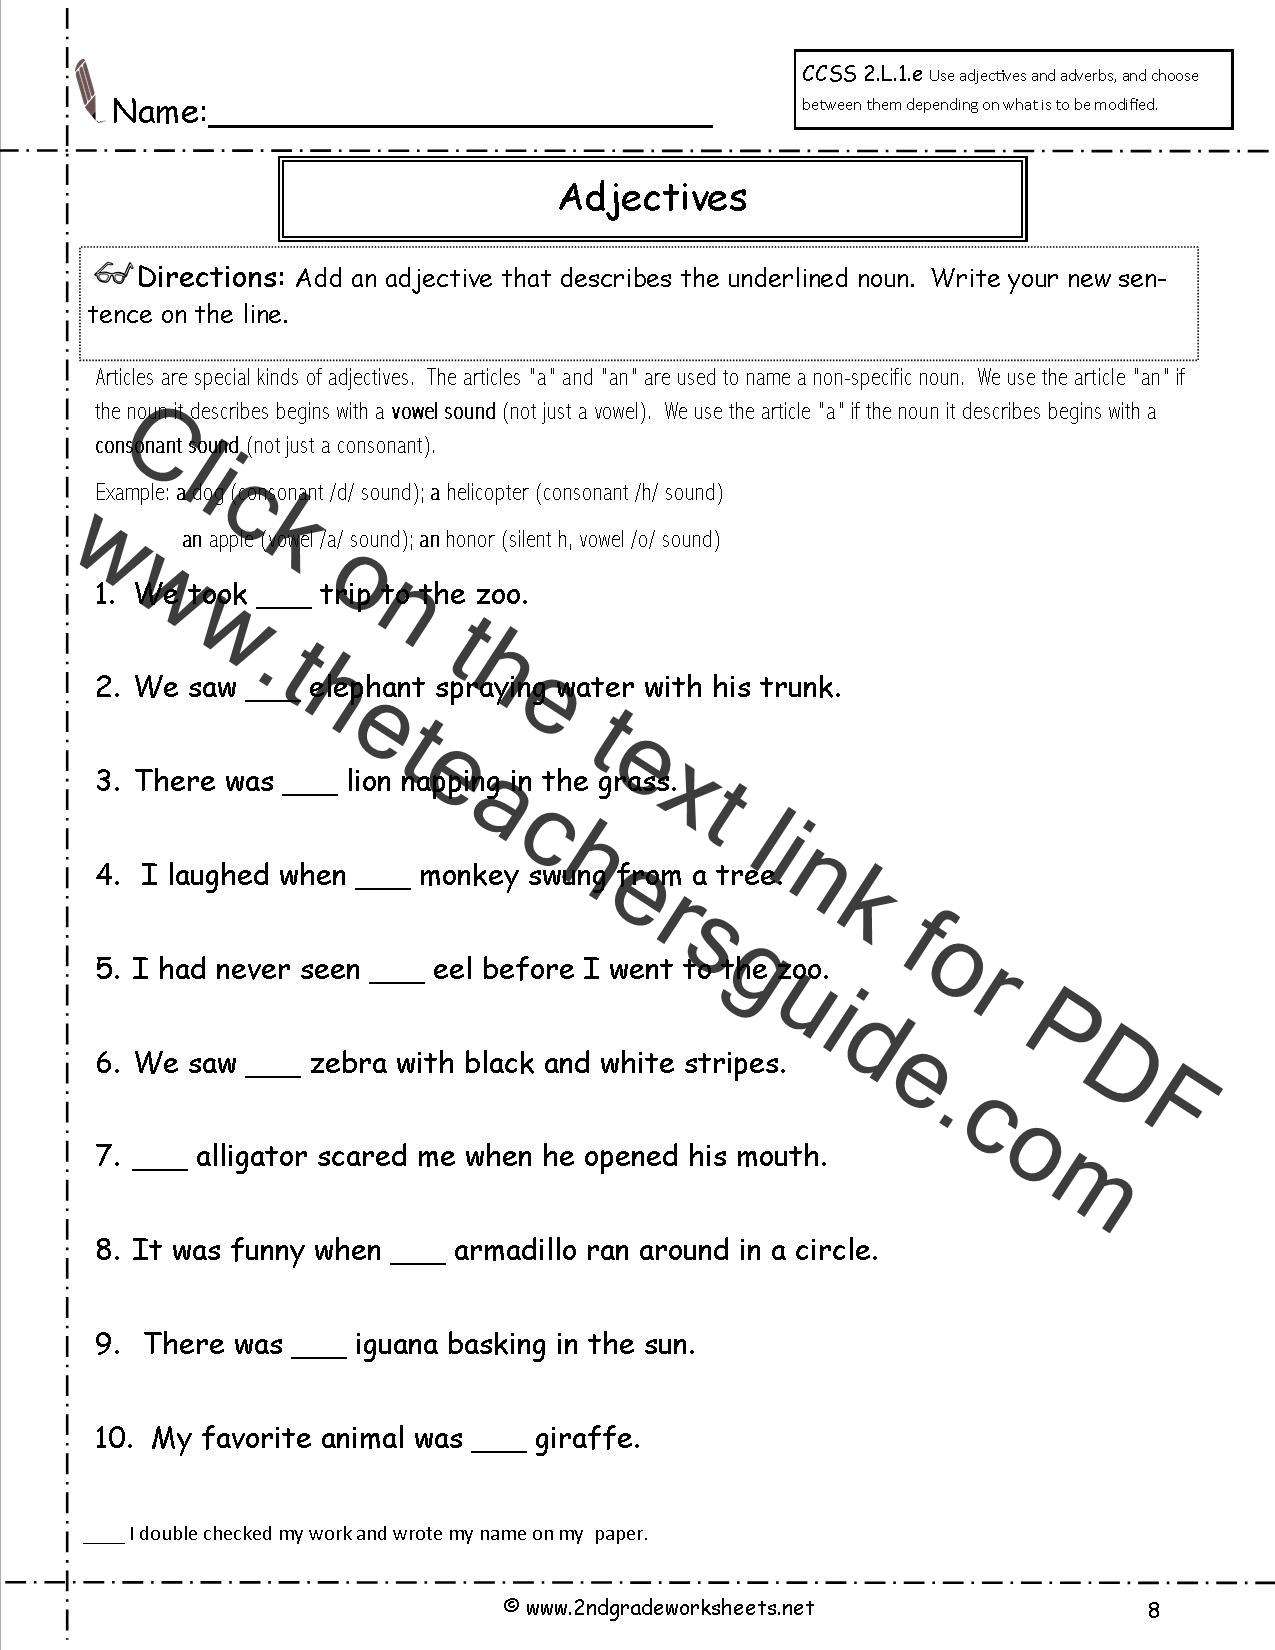 Printables Grammar Worksheets Second Grade free languagegrammar worksheets and printouts adjectives worksheets